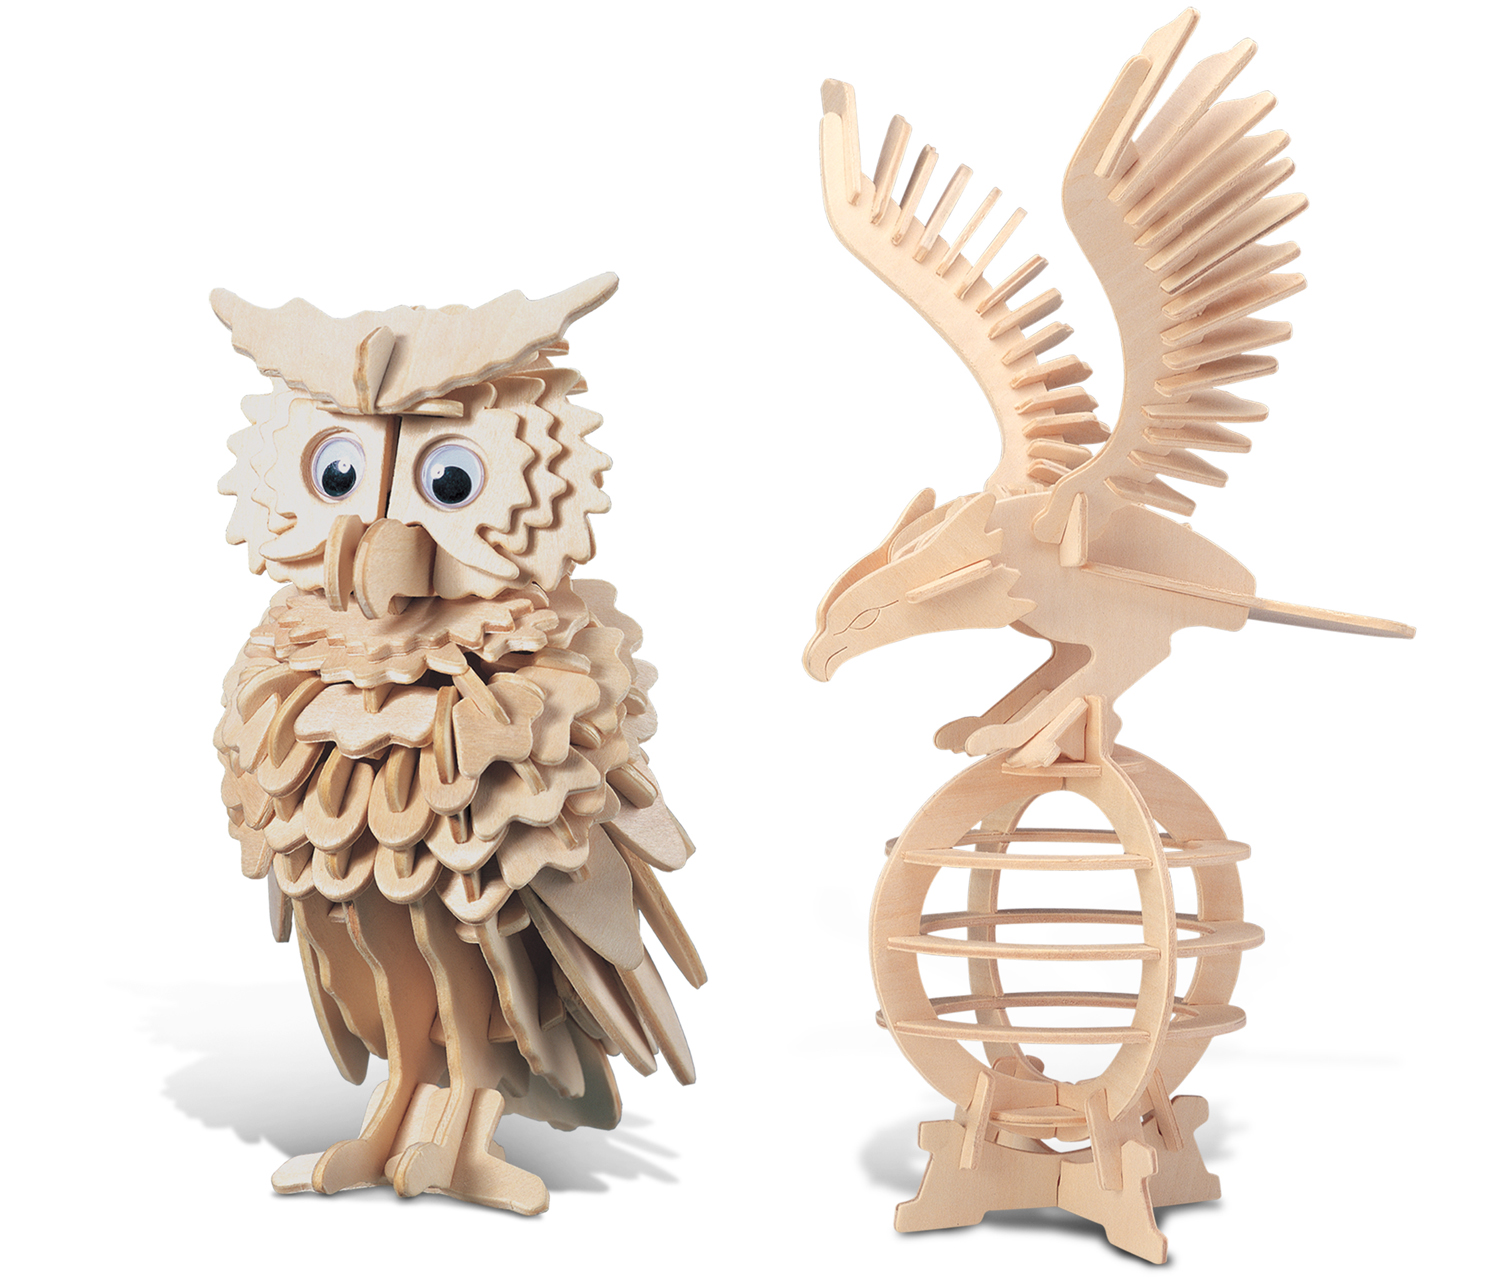 Puzzled Eagle and Owl Wooden 3D Puzzle Construction Kit by Puzzled Inc